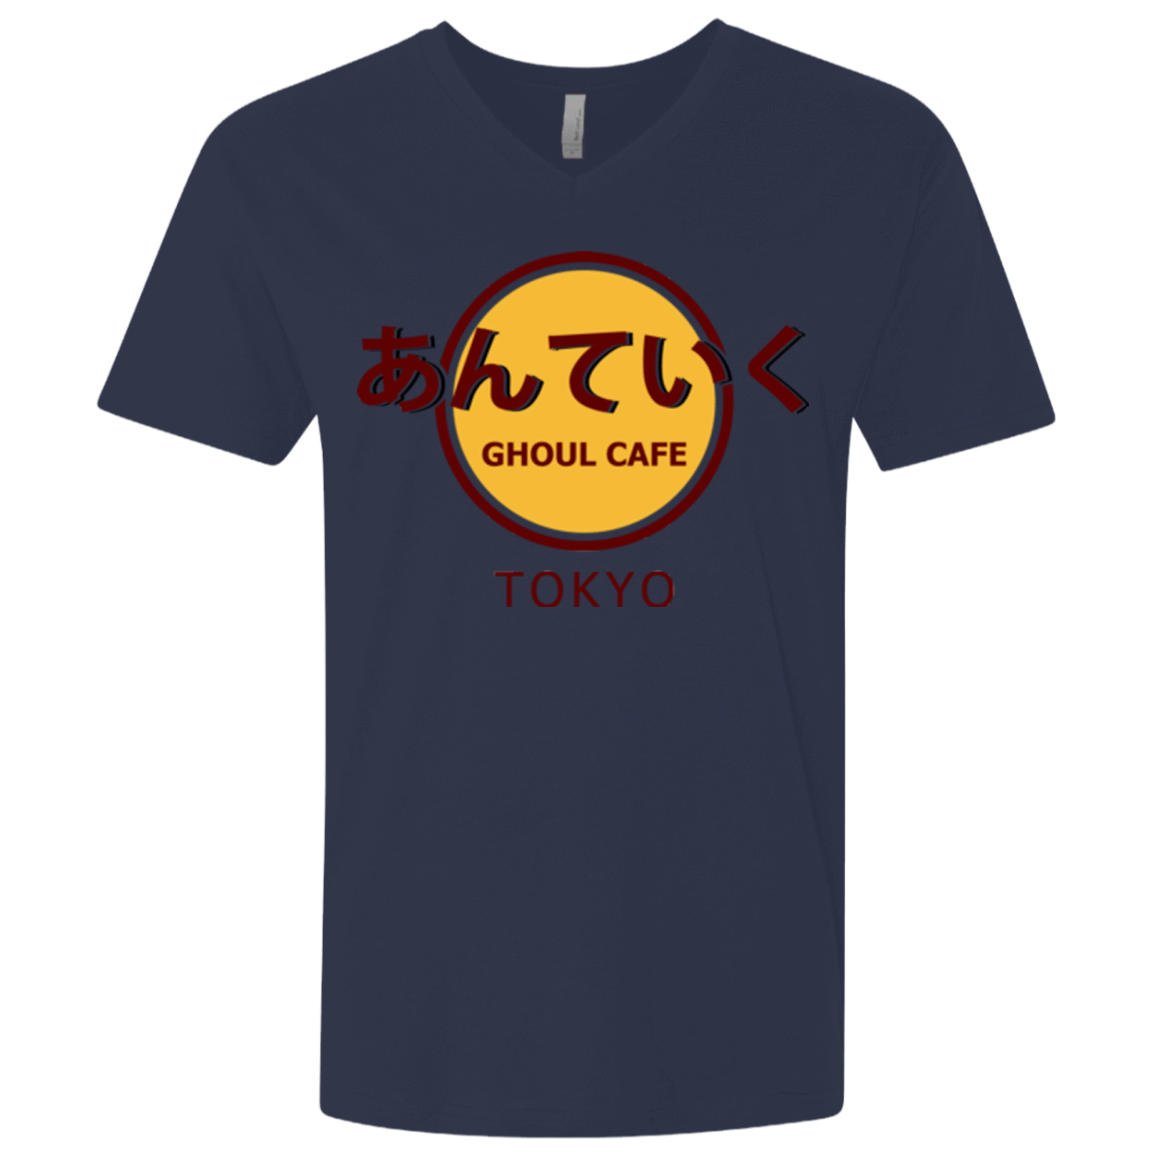 Ghoul cafe Men's Premium V-Neck